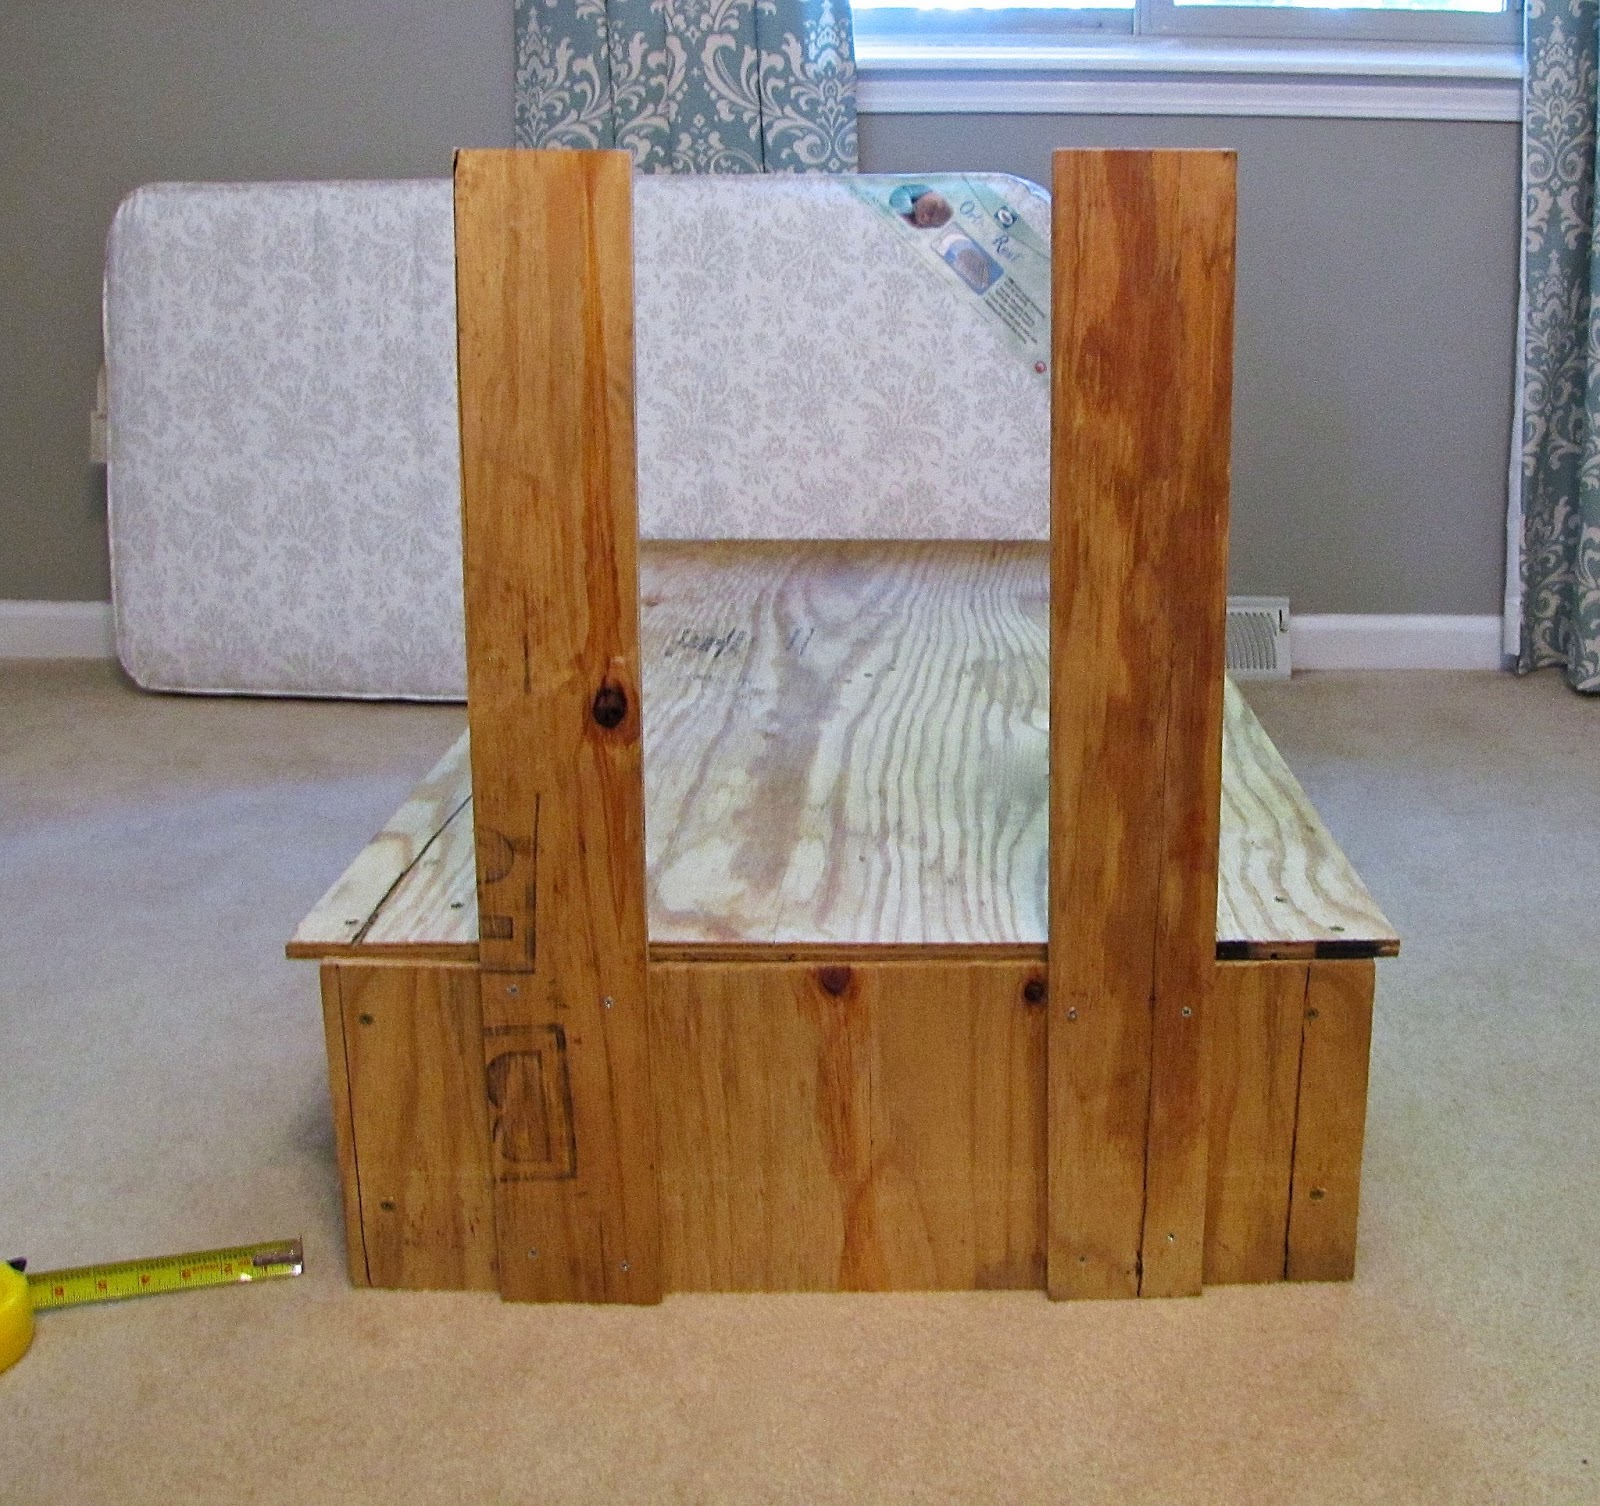 The Modest Homestead Tufted Toddler Bed tutorial